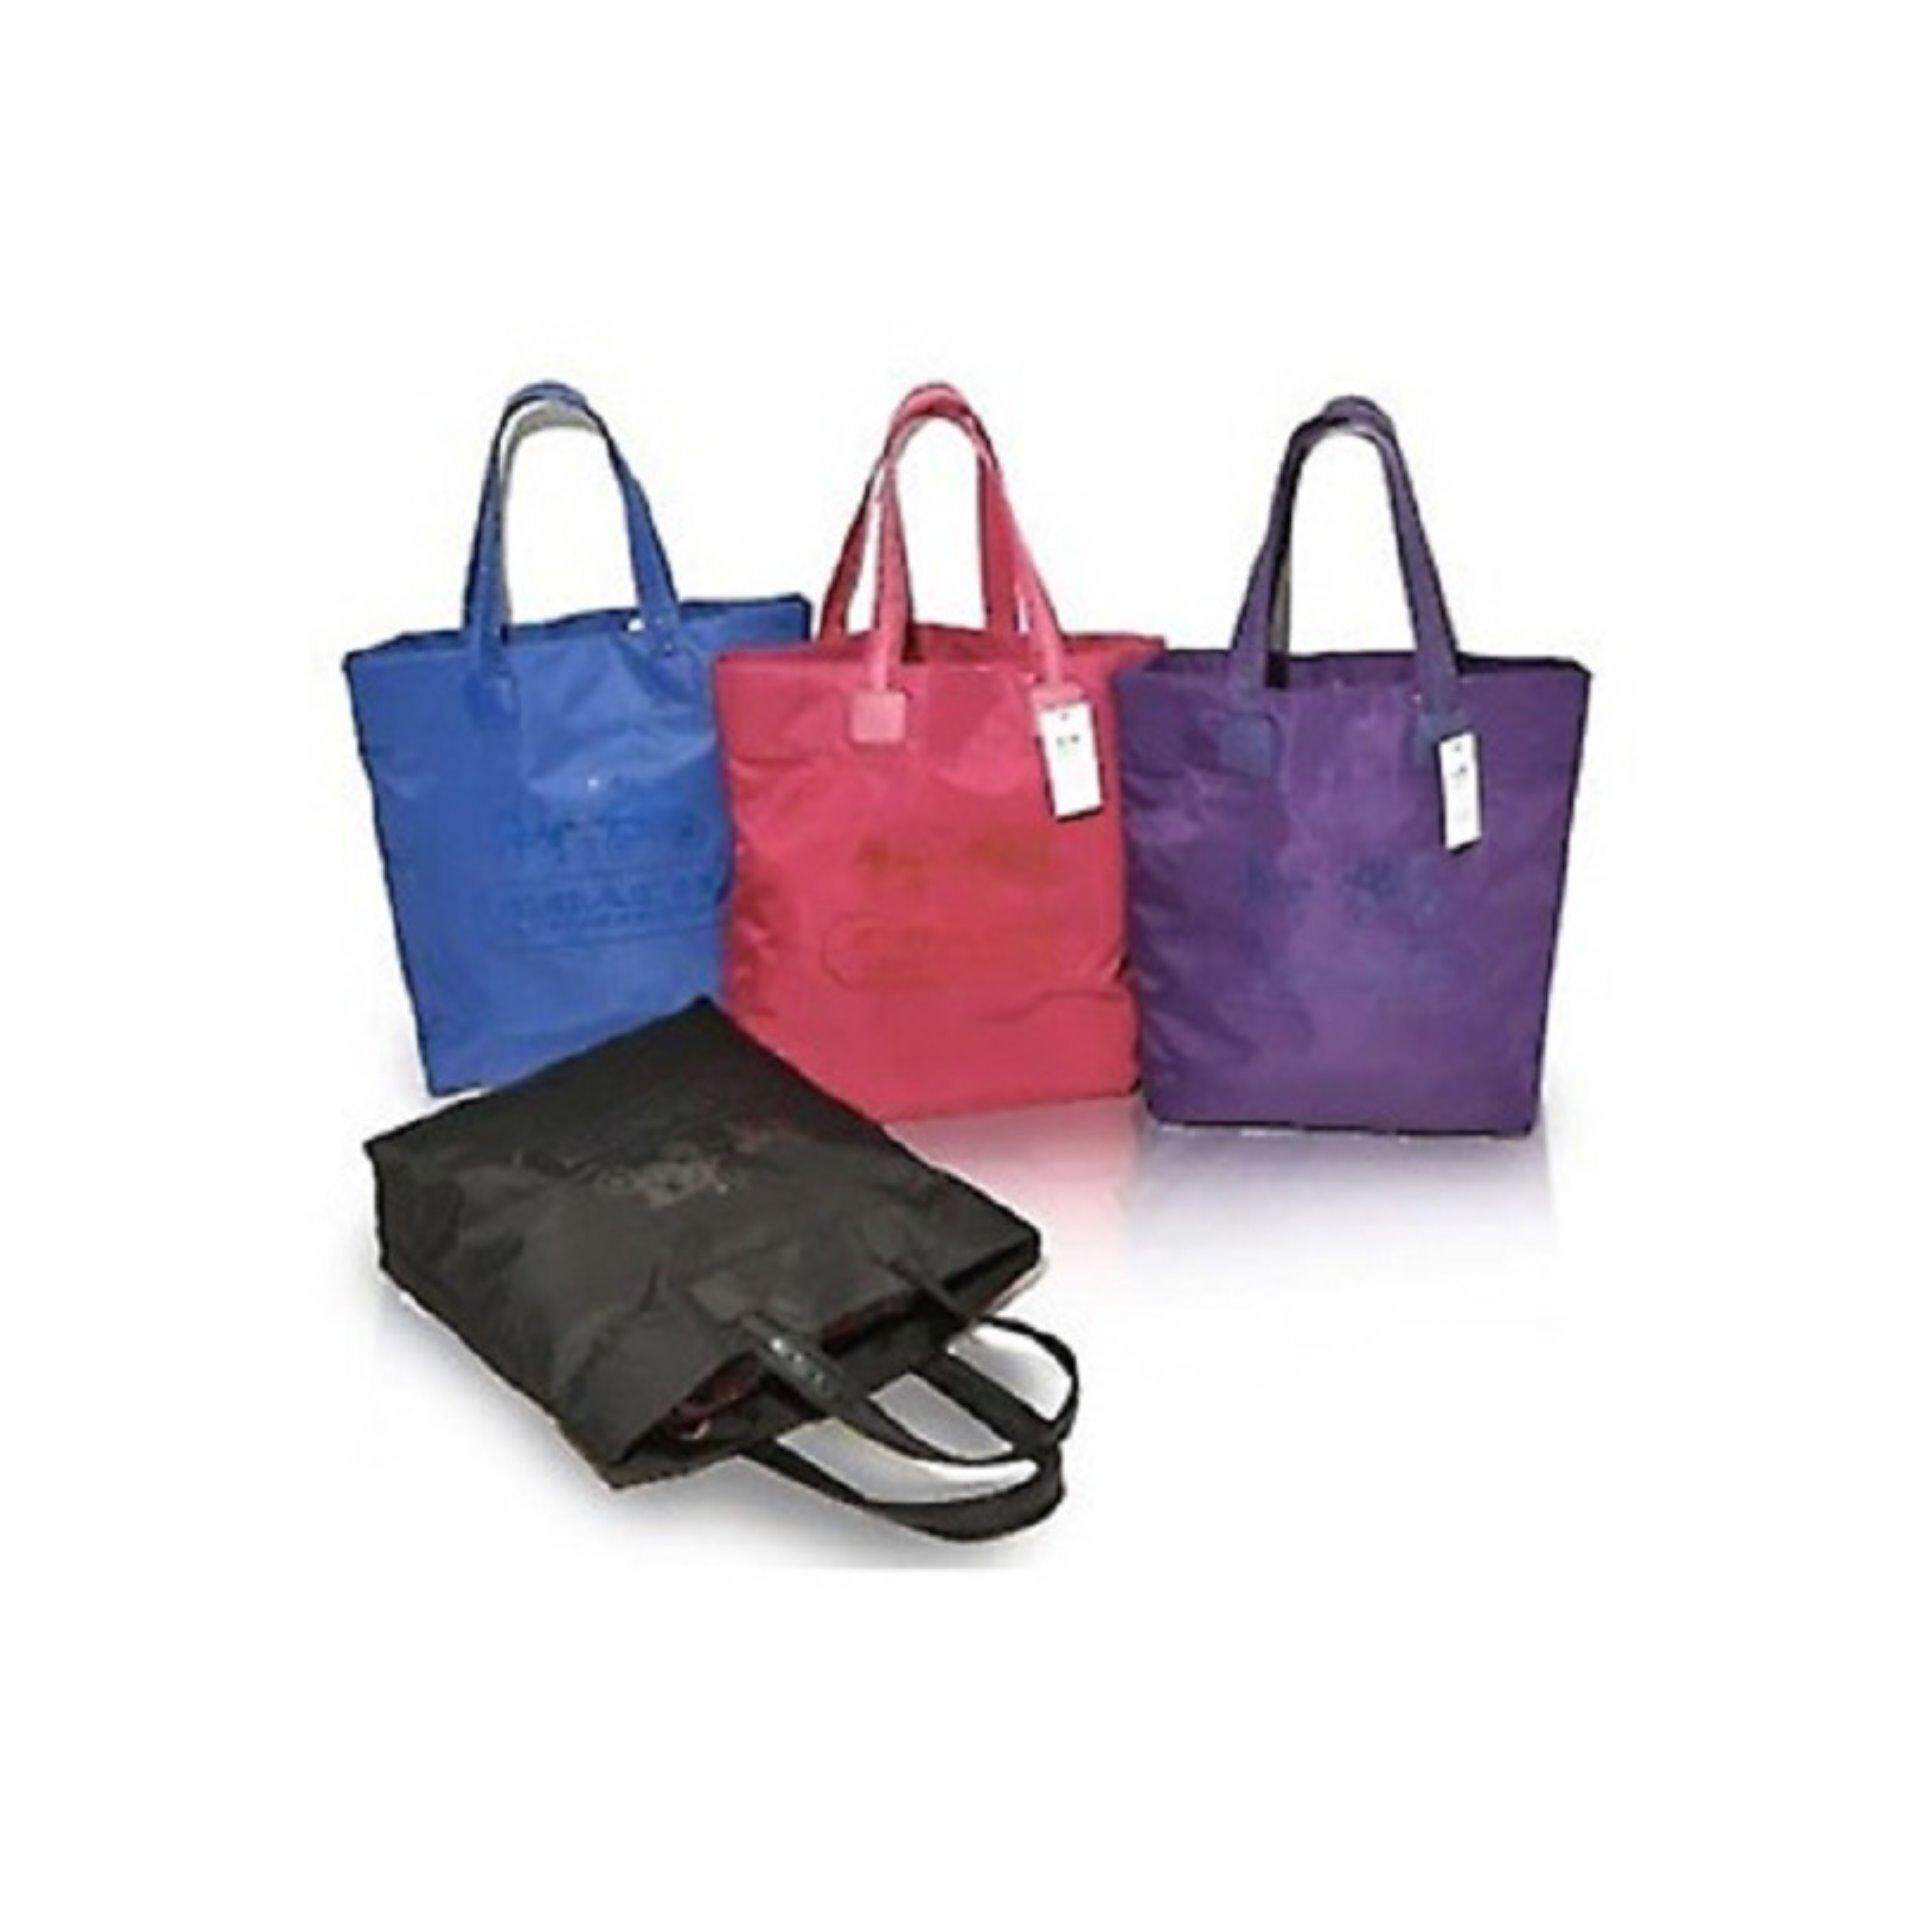 Coach Tote Bag -4 Colors - FREE SHIPPING + LOWEST IN TOWN 28a5d4dd0da38